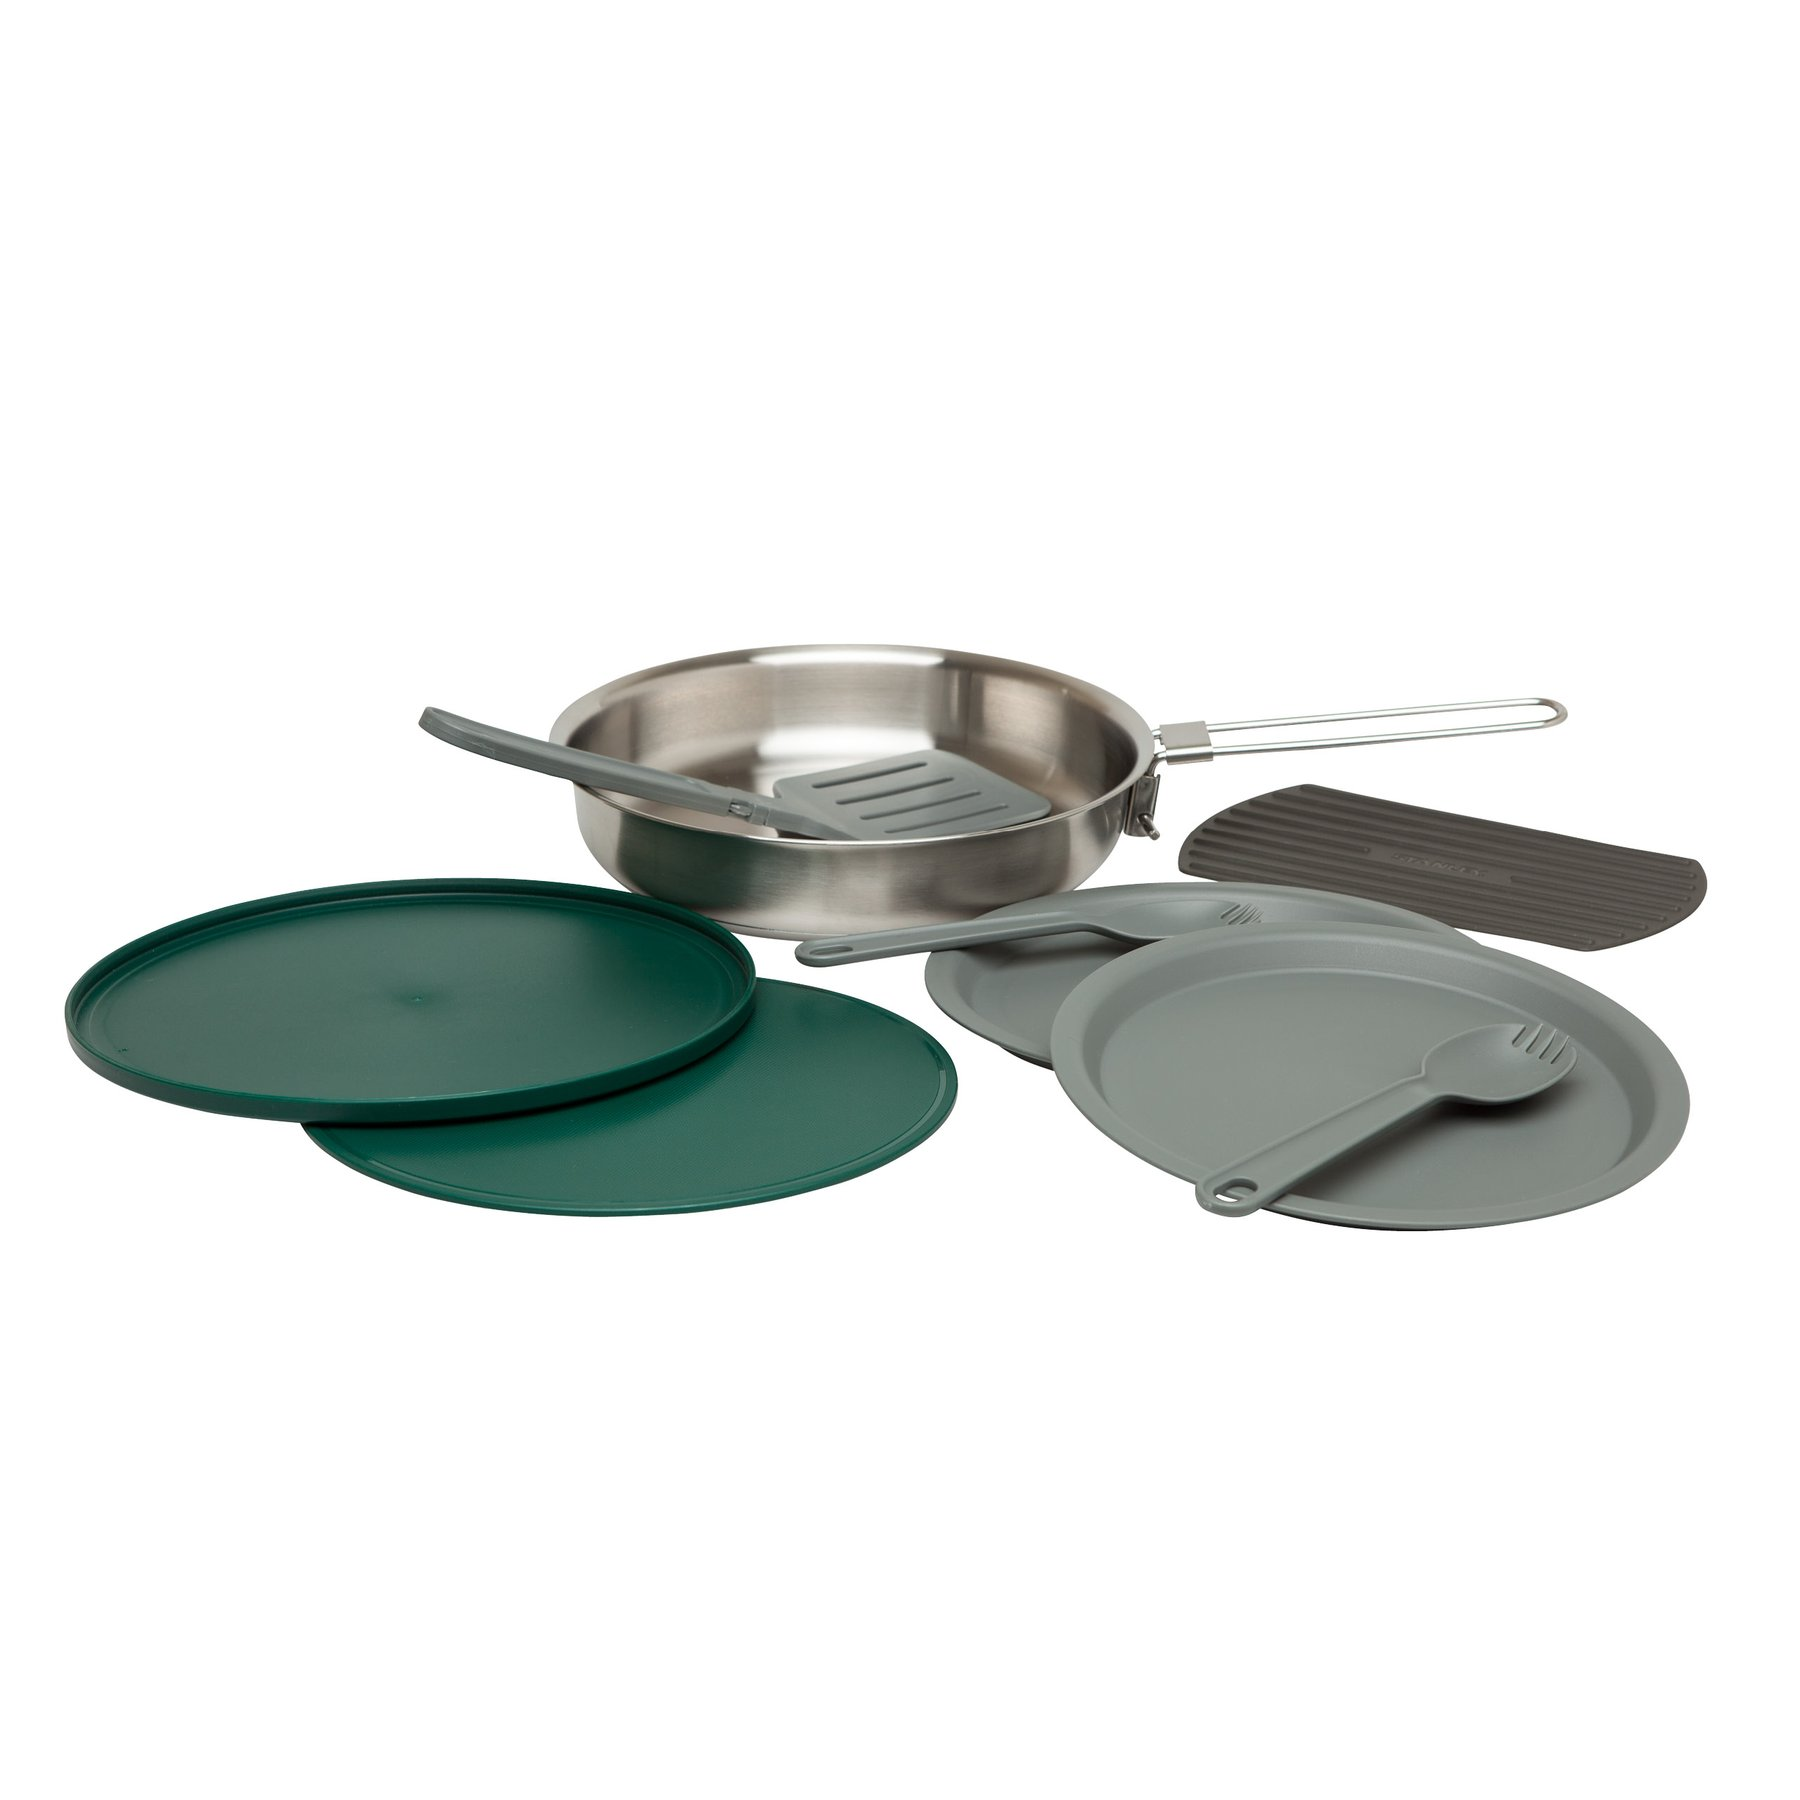 STANLEY ADVENTURE ALL-IN-ONE FRY PAN SET - Camping-Bratpfannen-Set